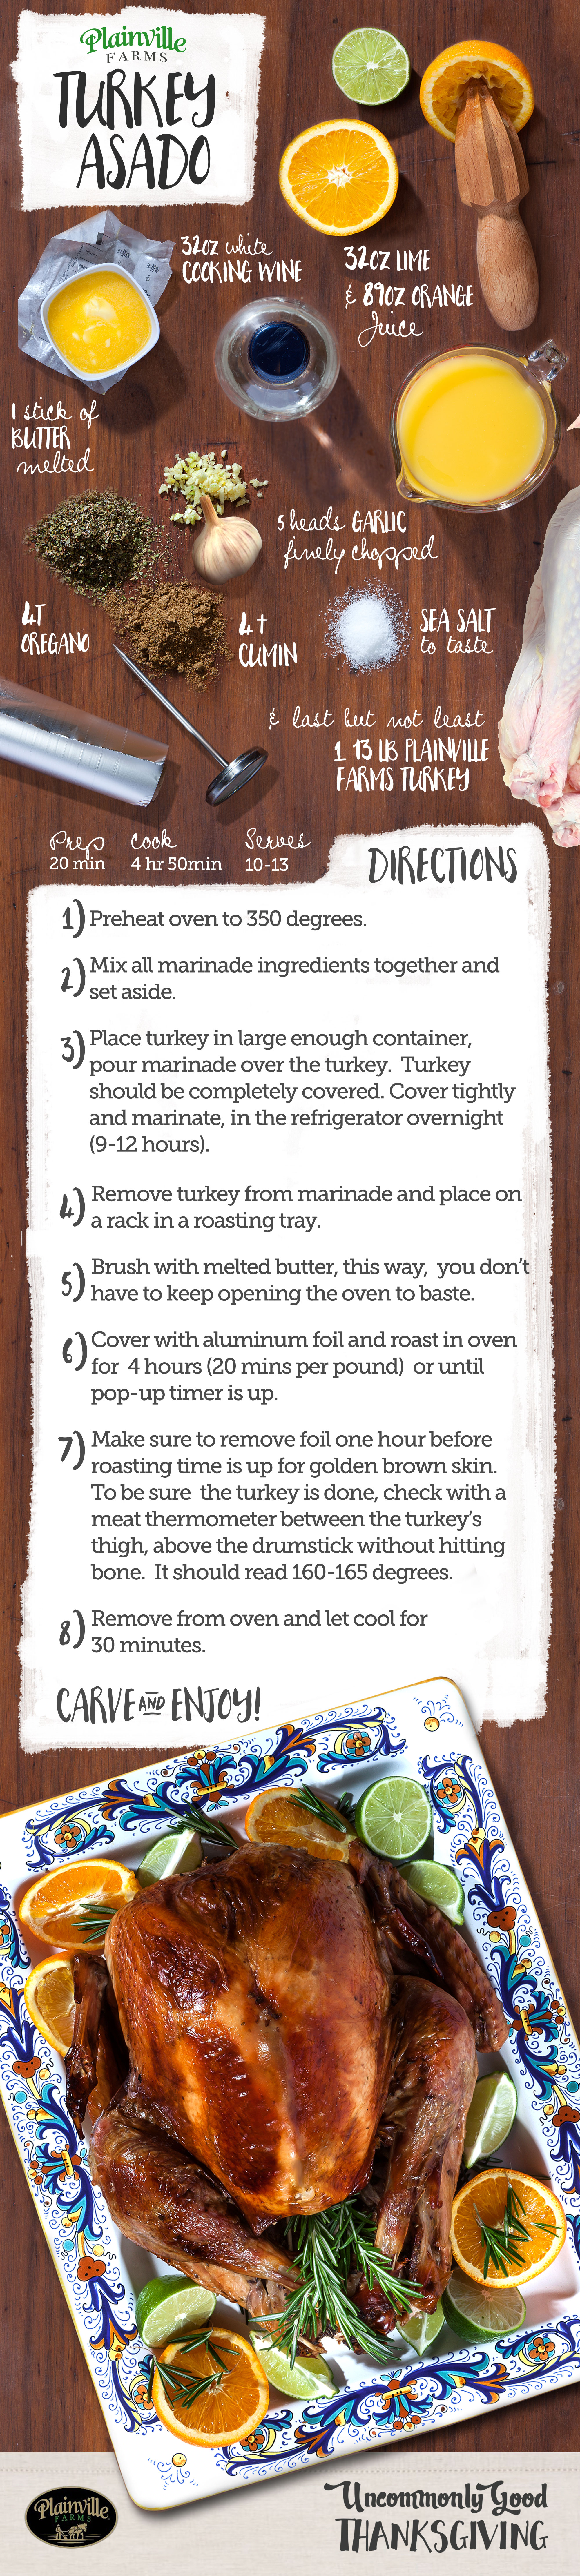 Thankful may be an understatement when you have Turkey this Uncommonly Good. Follow each step to craft a Turkey Asado that's worth eating twice… if only there were leftovers.